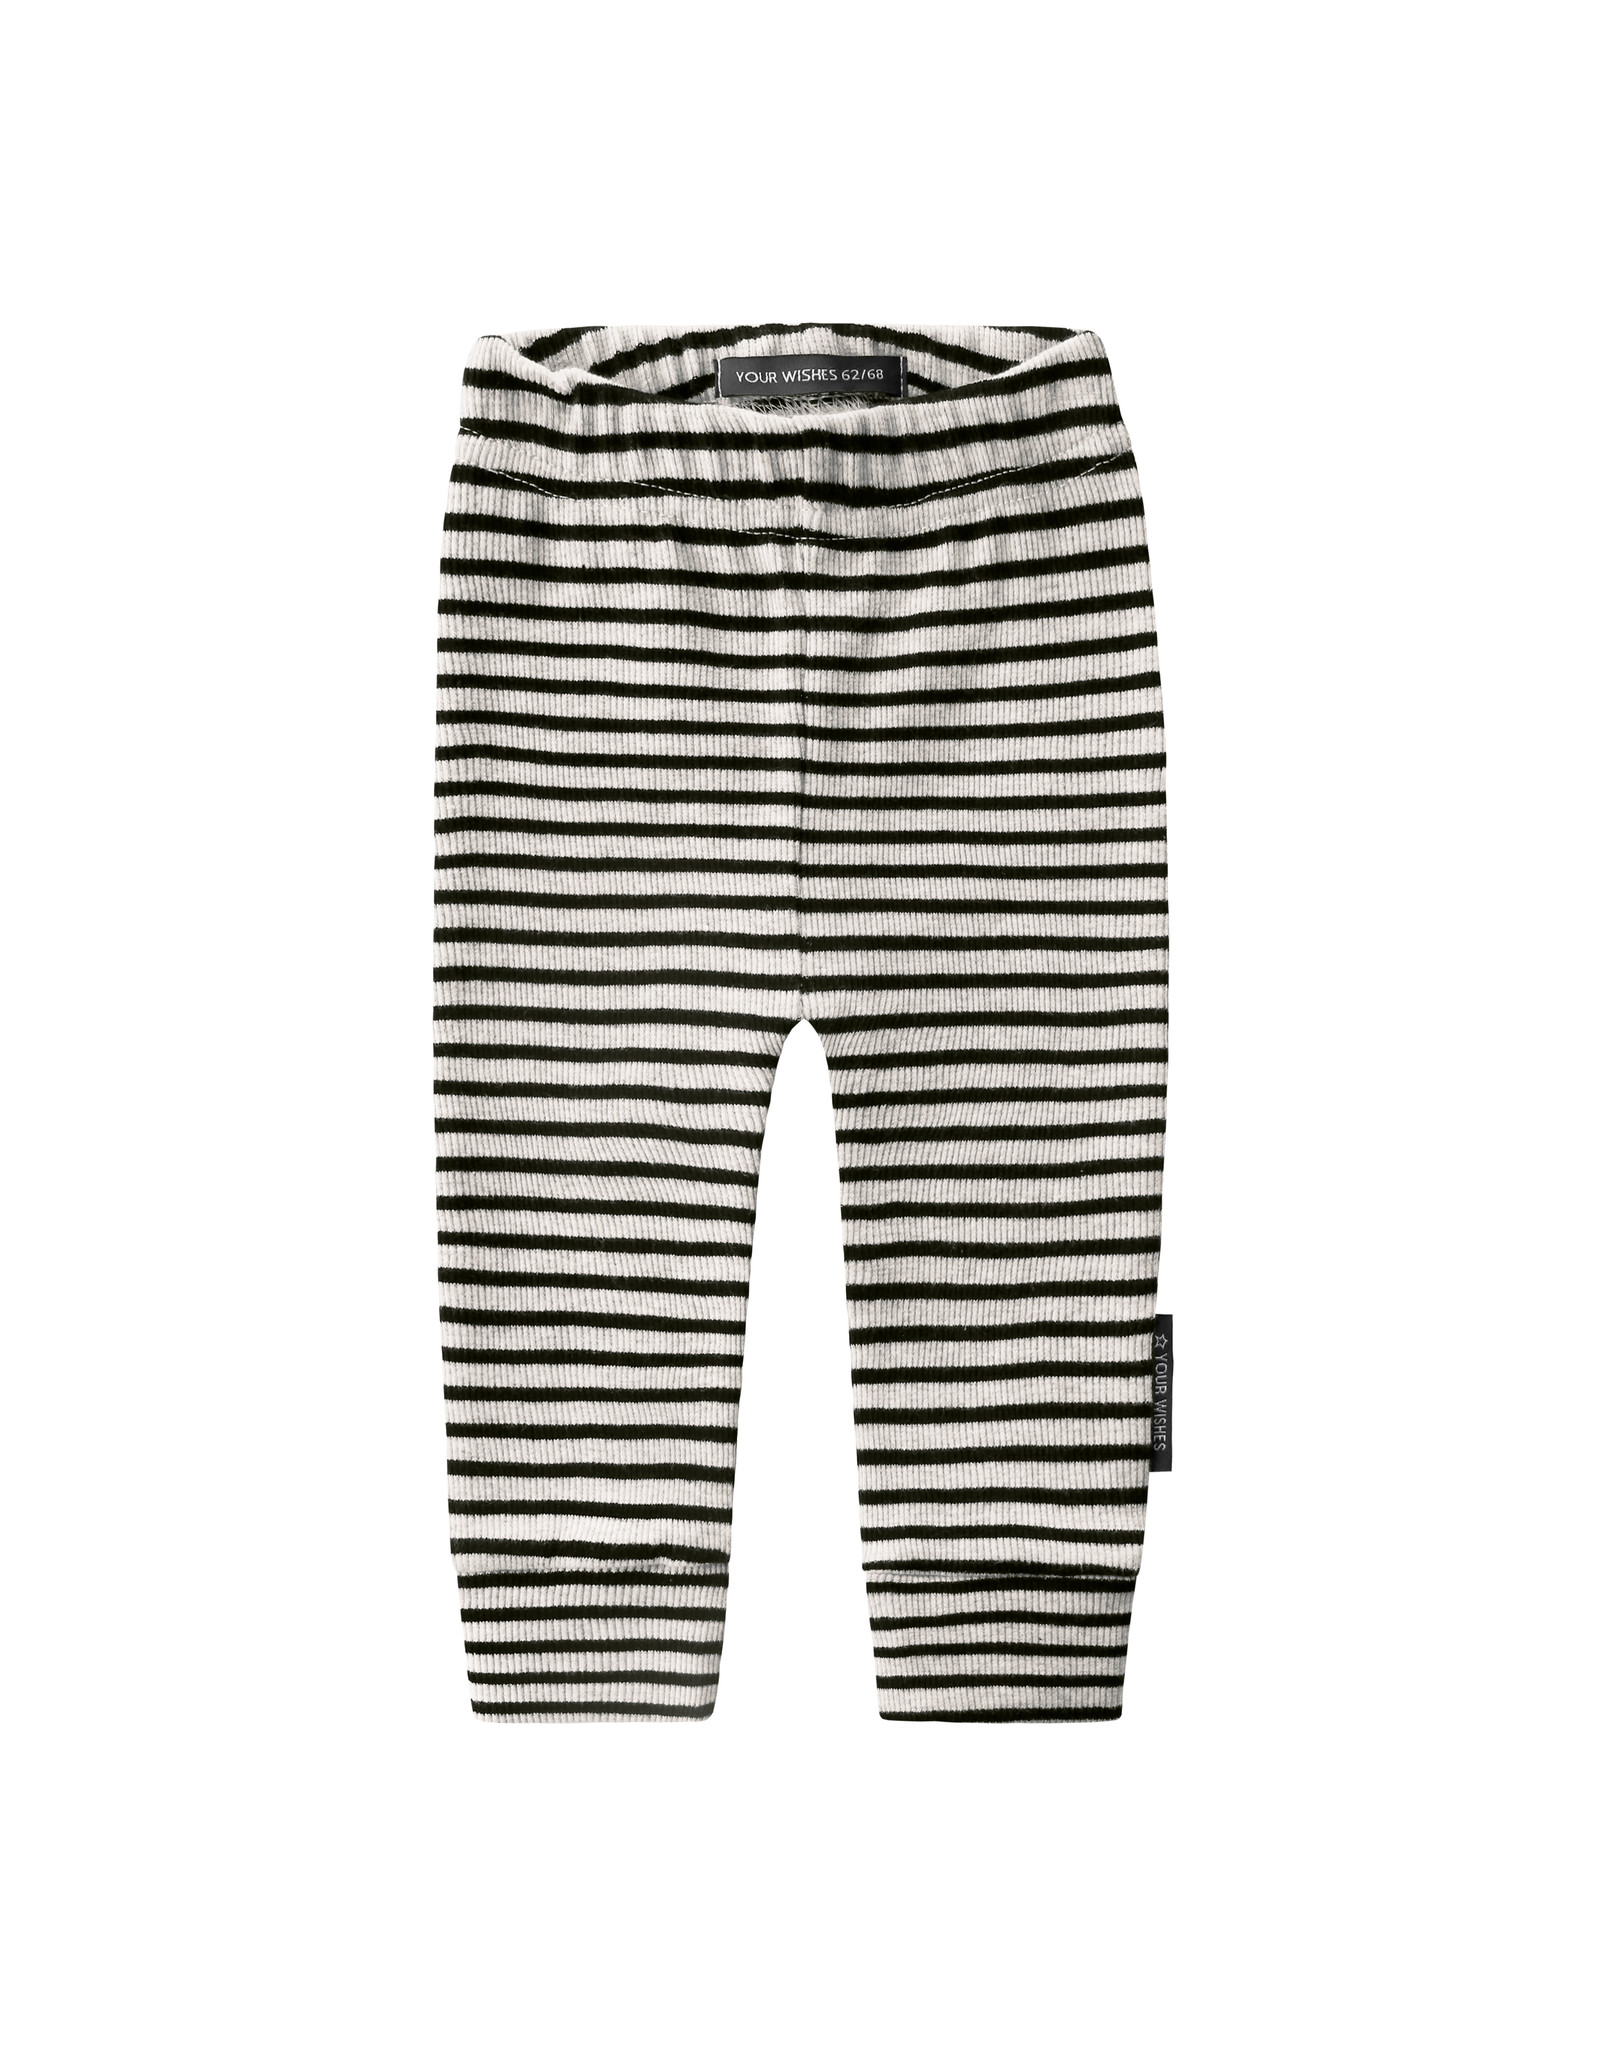 Your Wishes Beige - Stripes | Fitted Pants